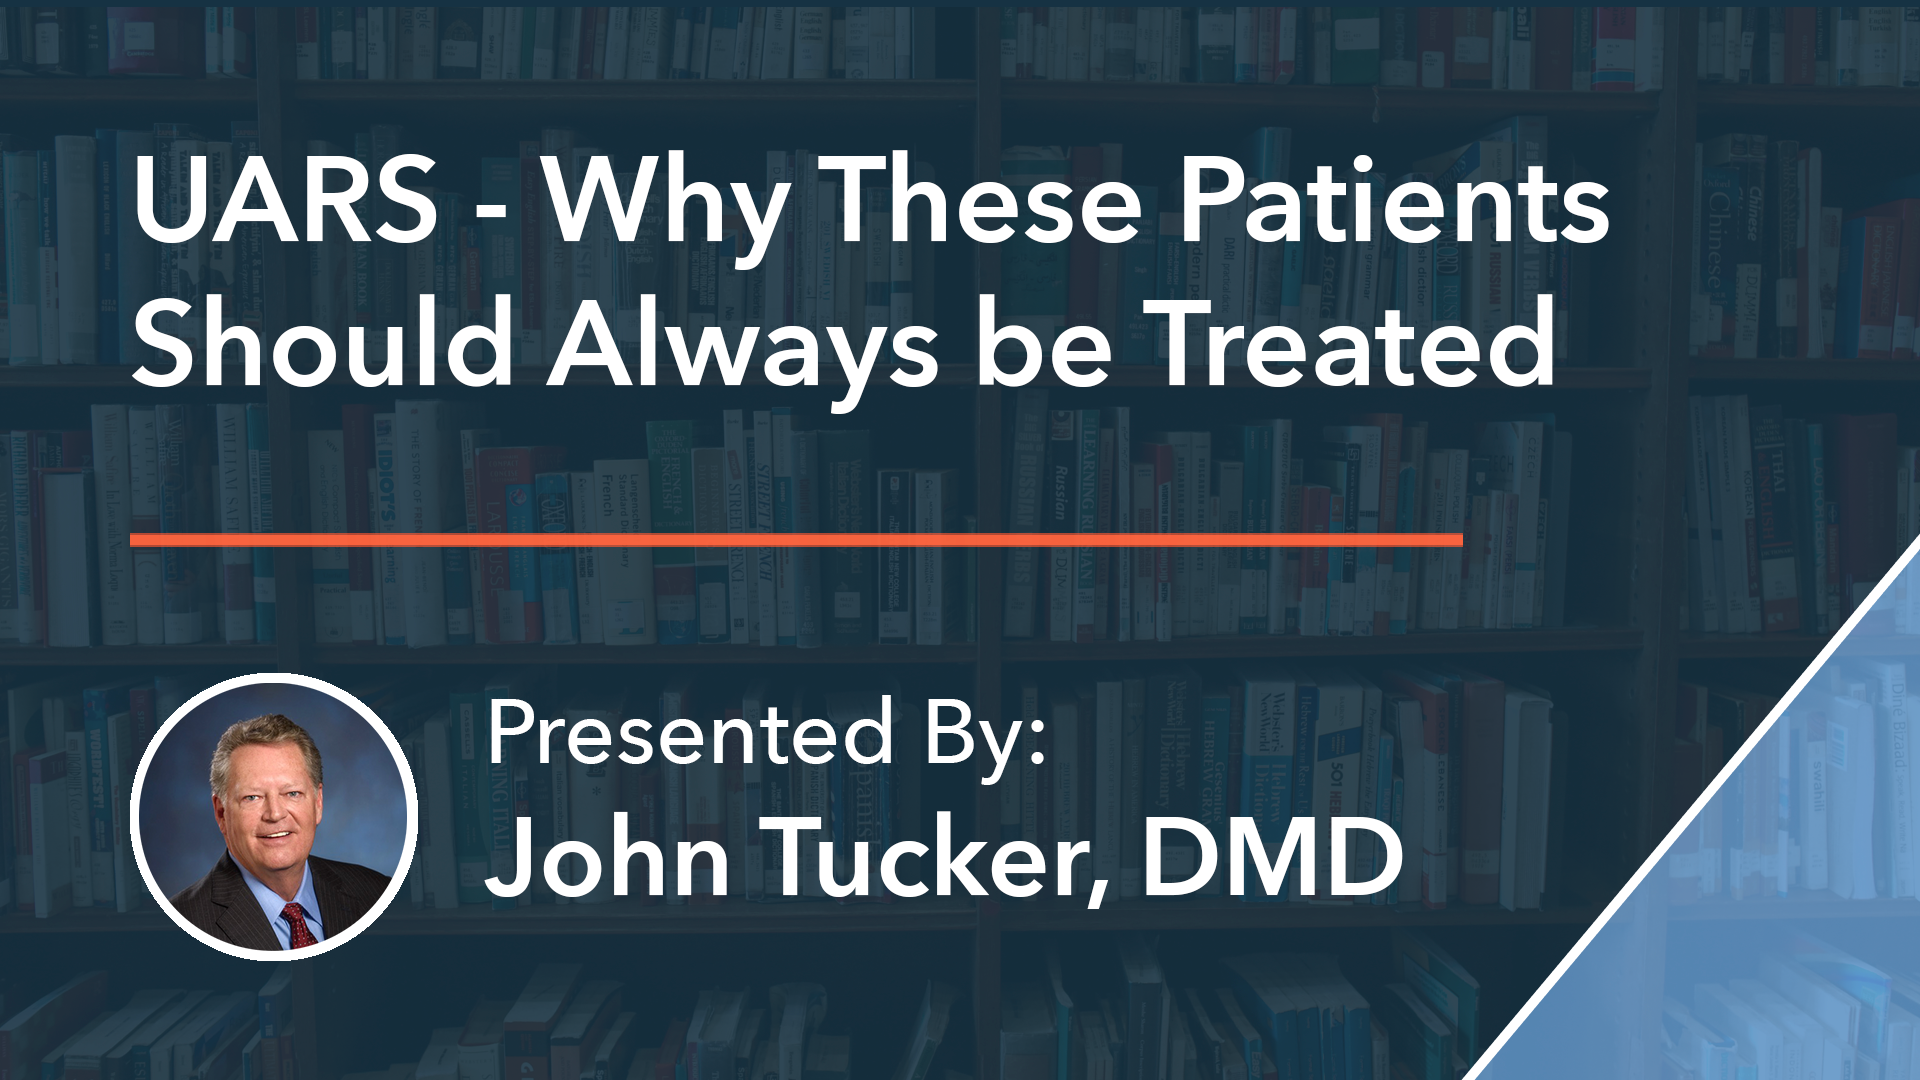 UARS - Why These Patients Should Always be Treated Dr John Tucker